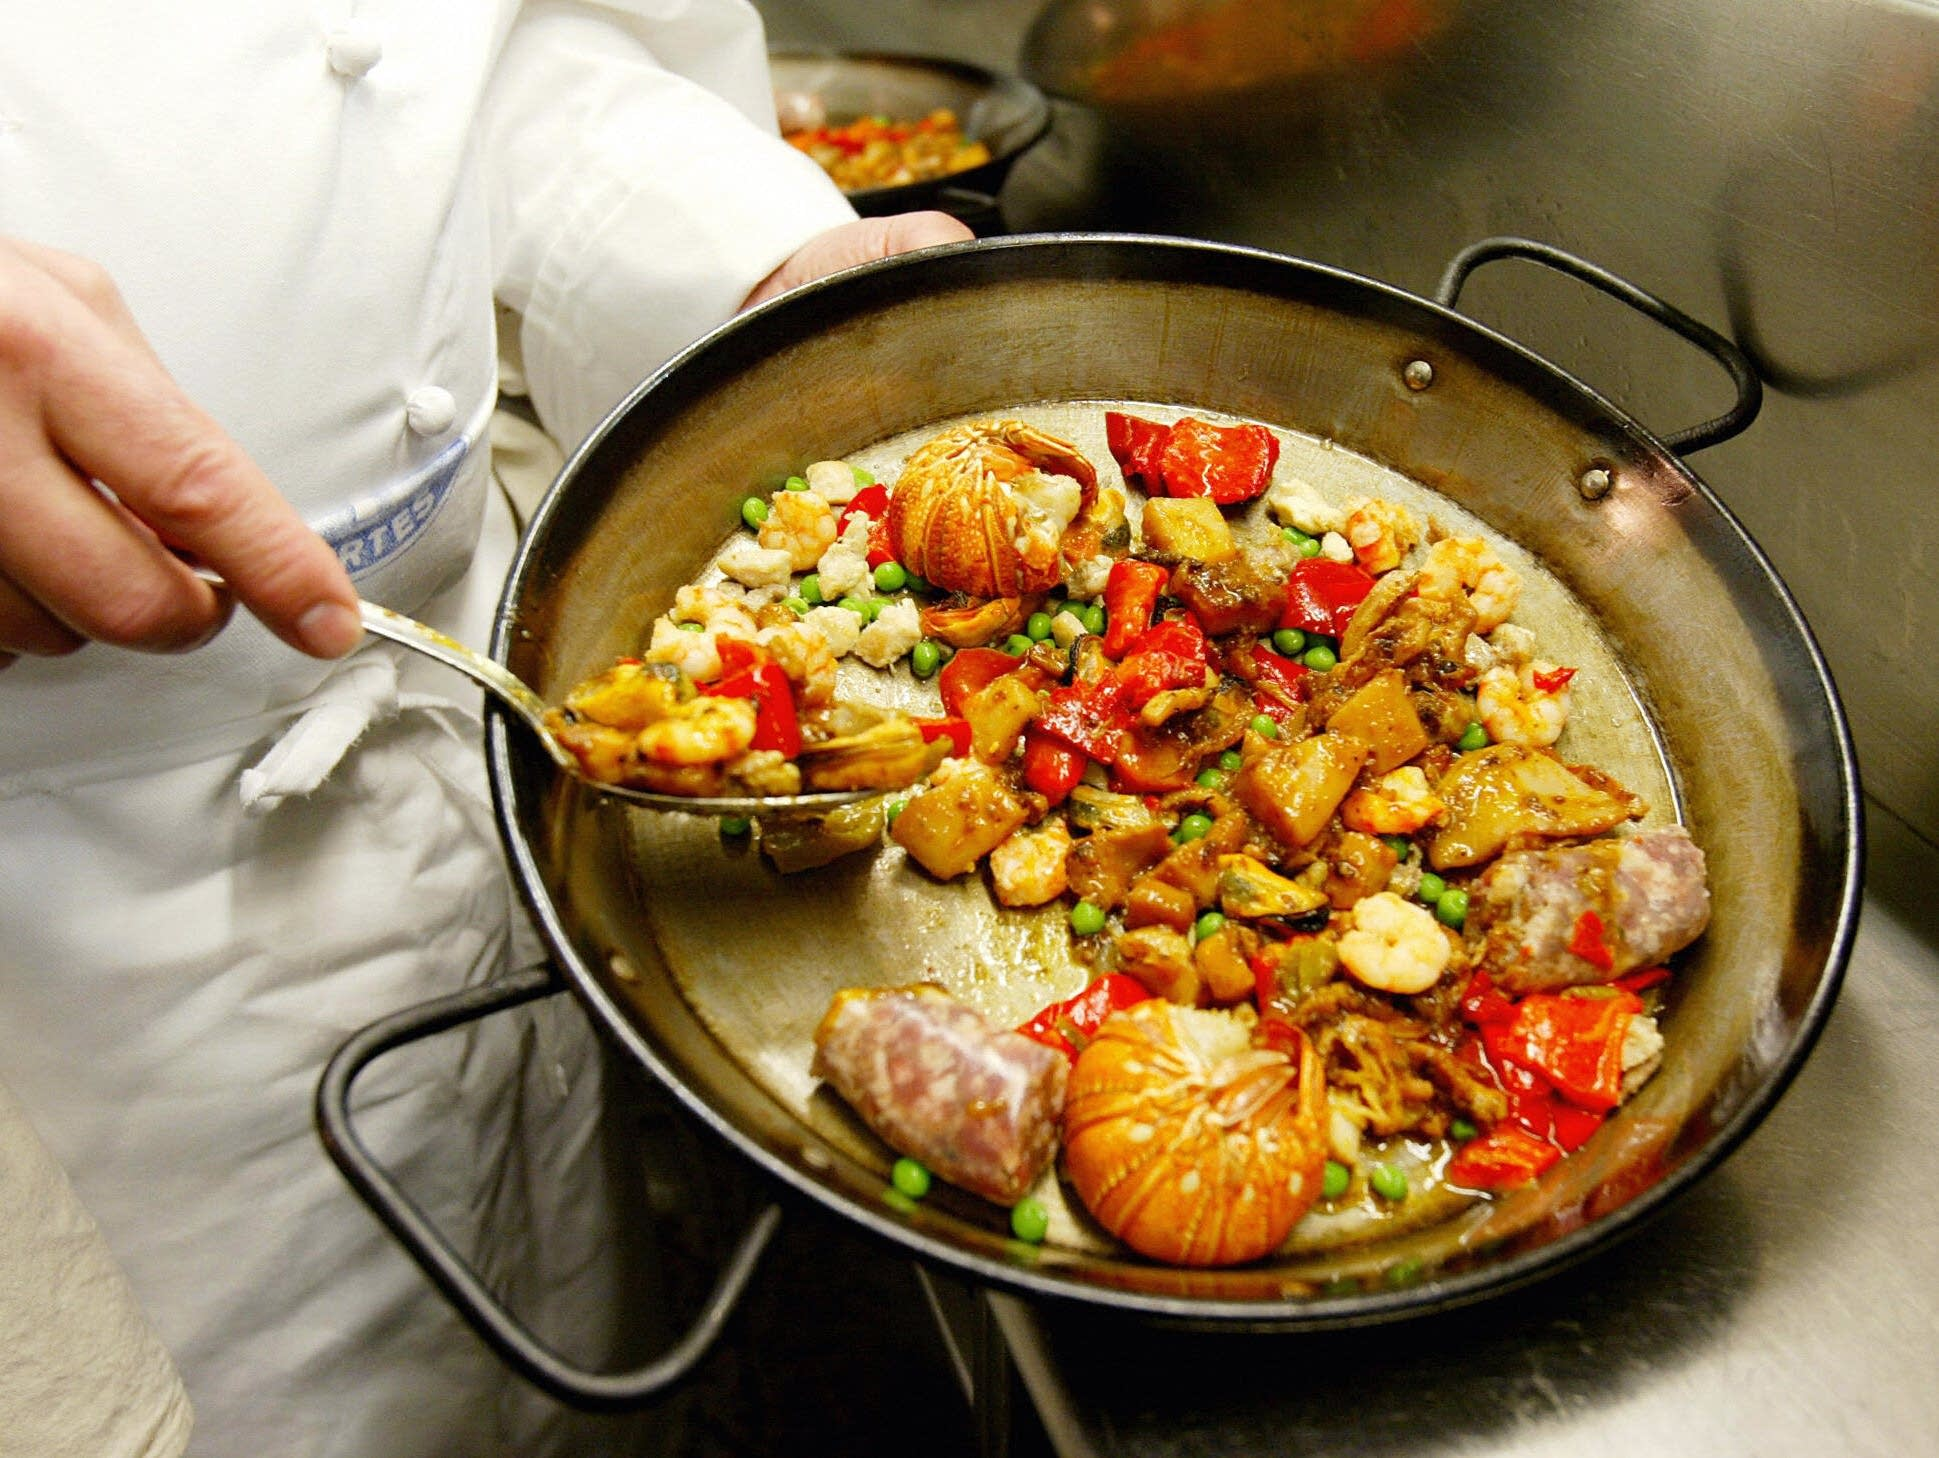 A chef prepares a seafood paella